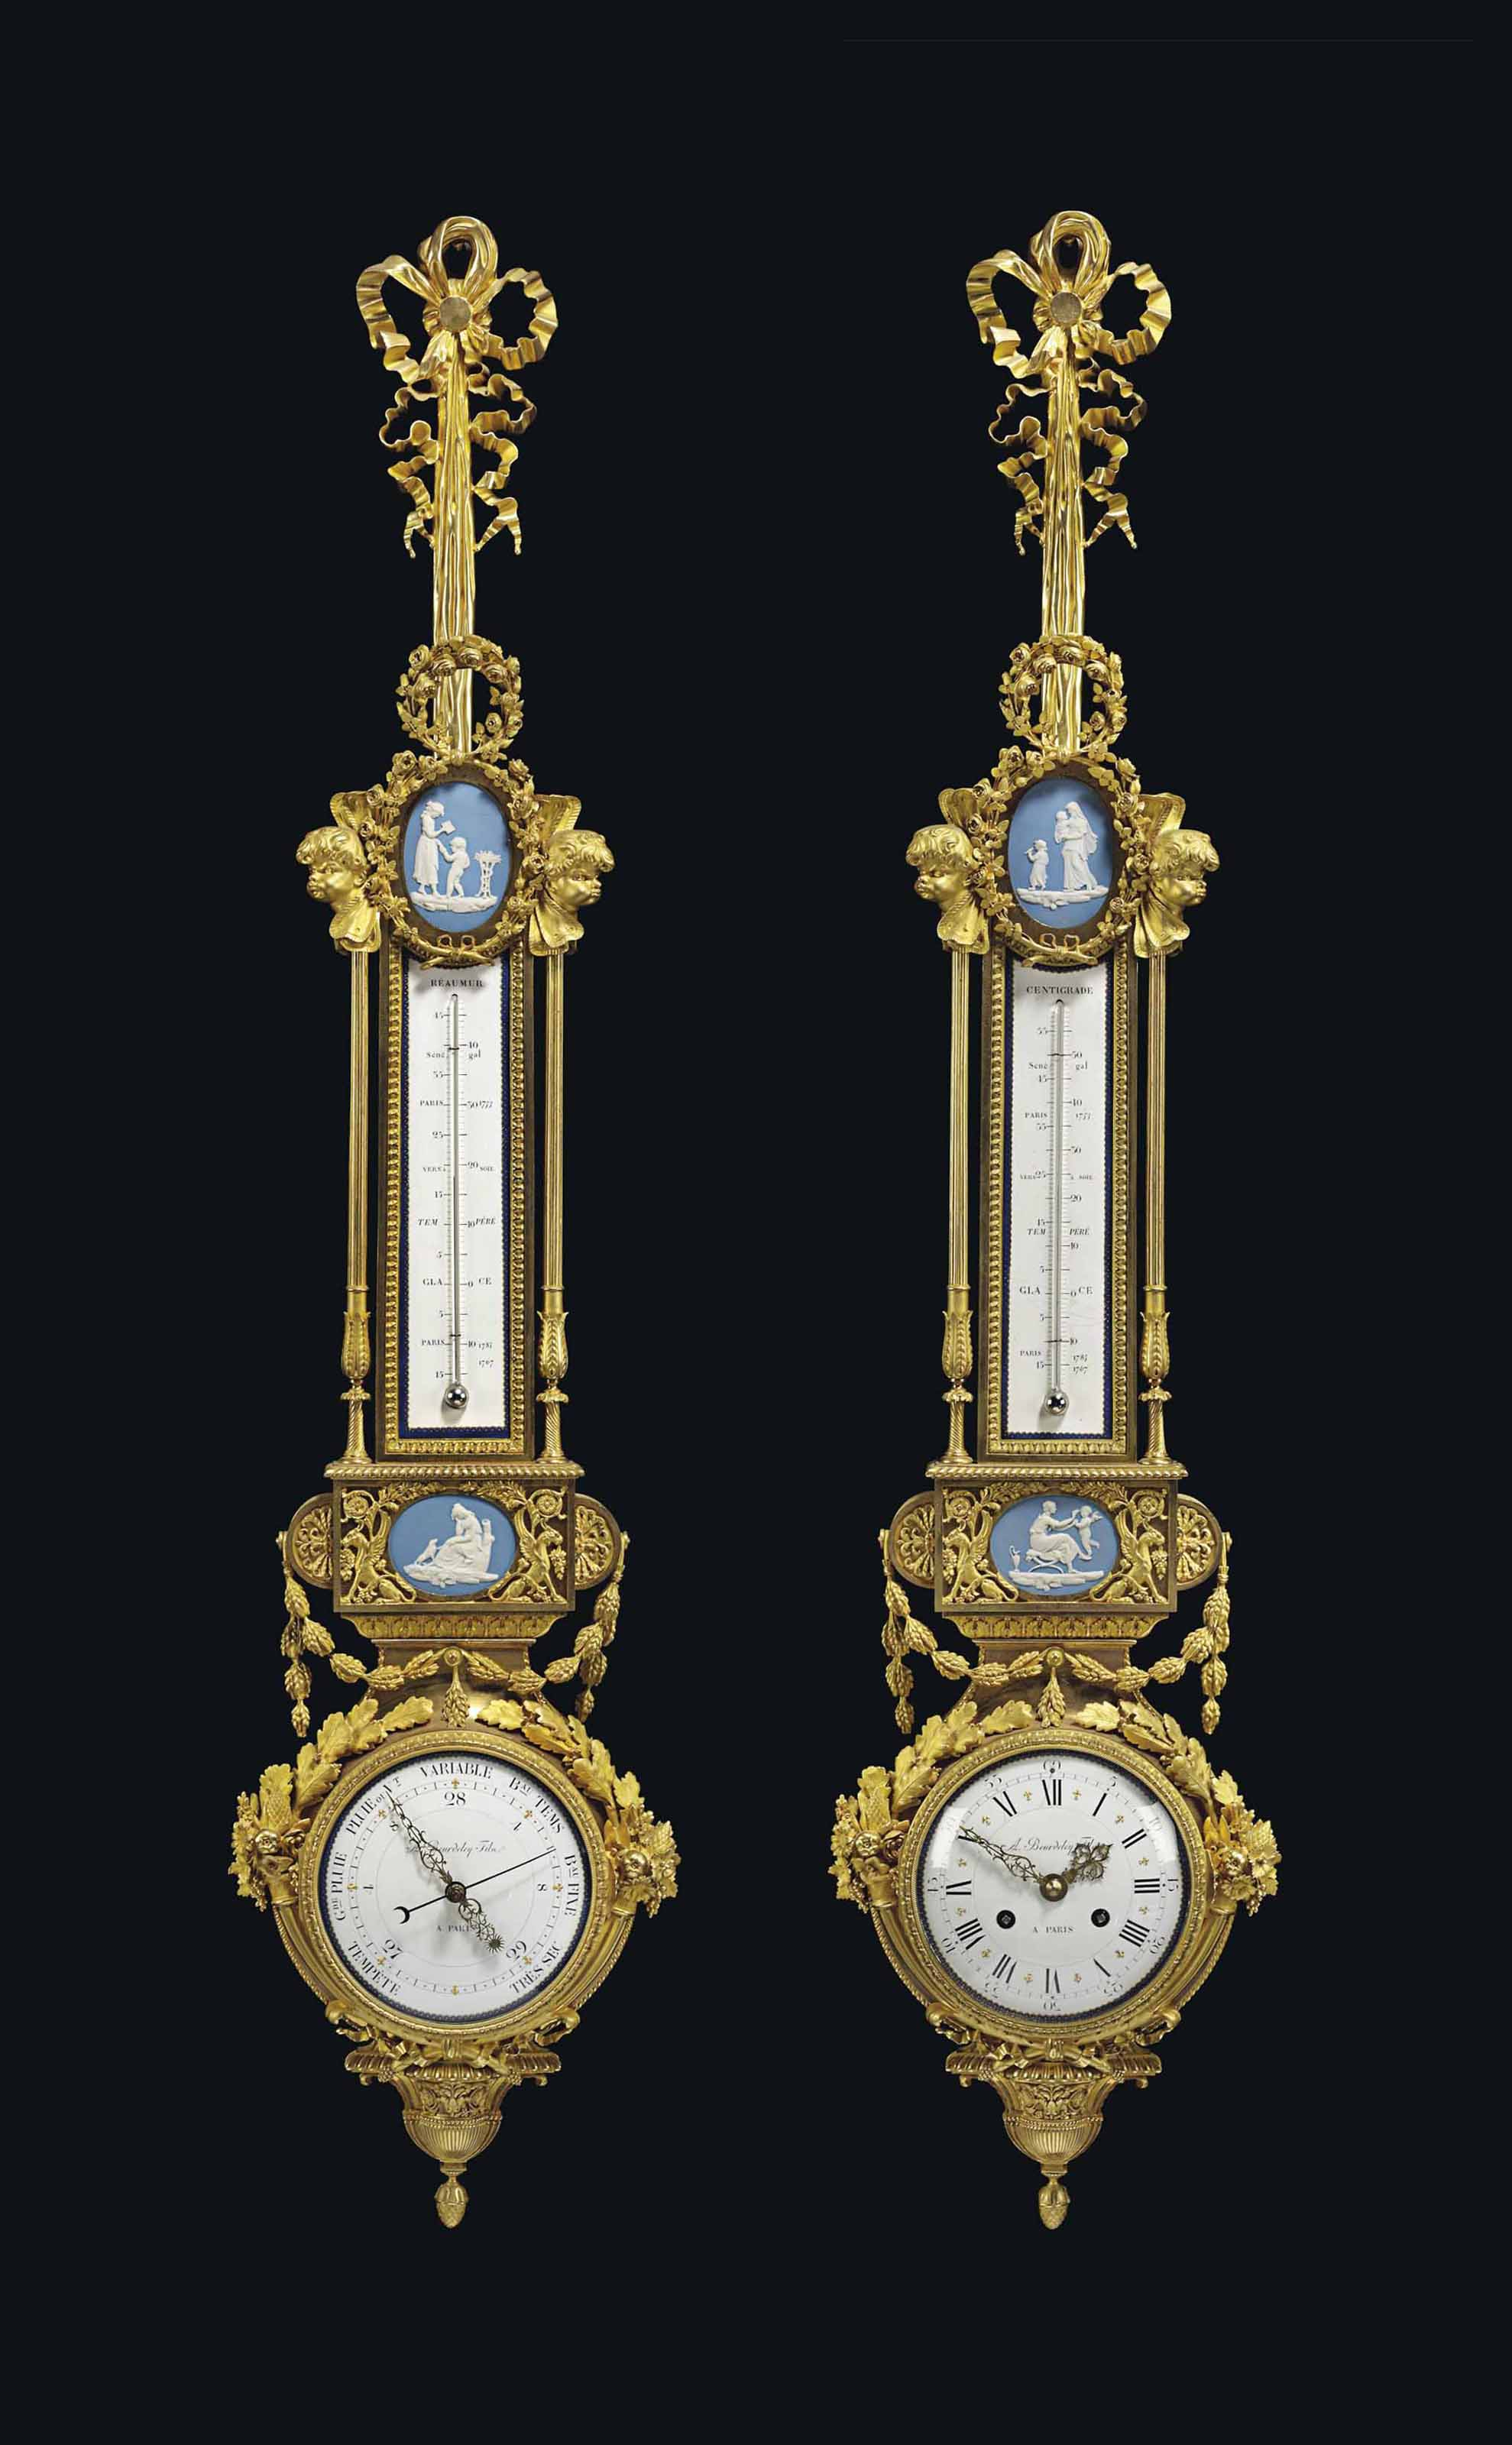 A FRENCH ORMOLU AND PORCELAIN CARTEL CLOCK AND BAROMETER